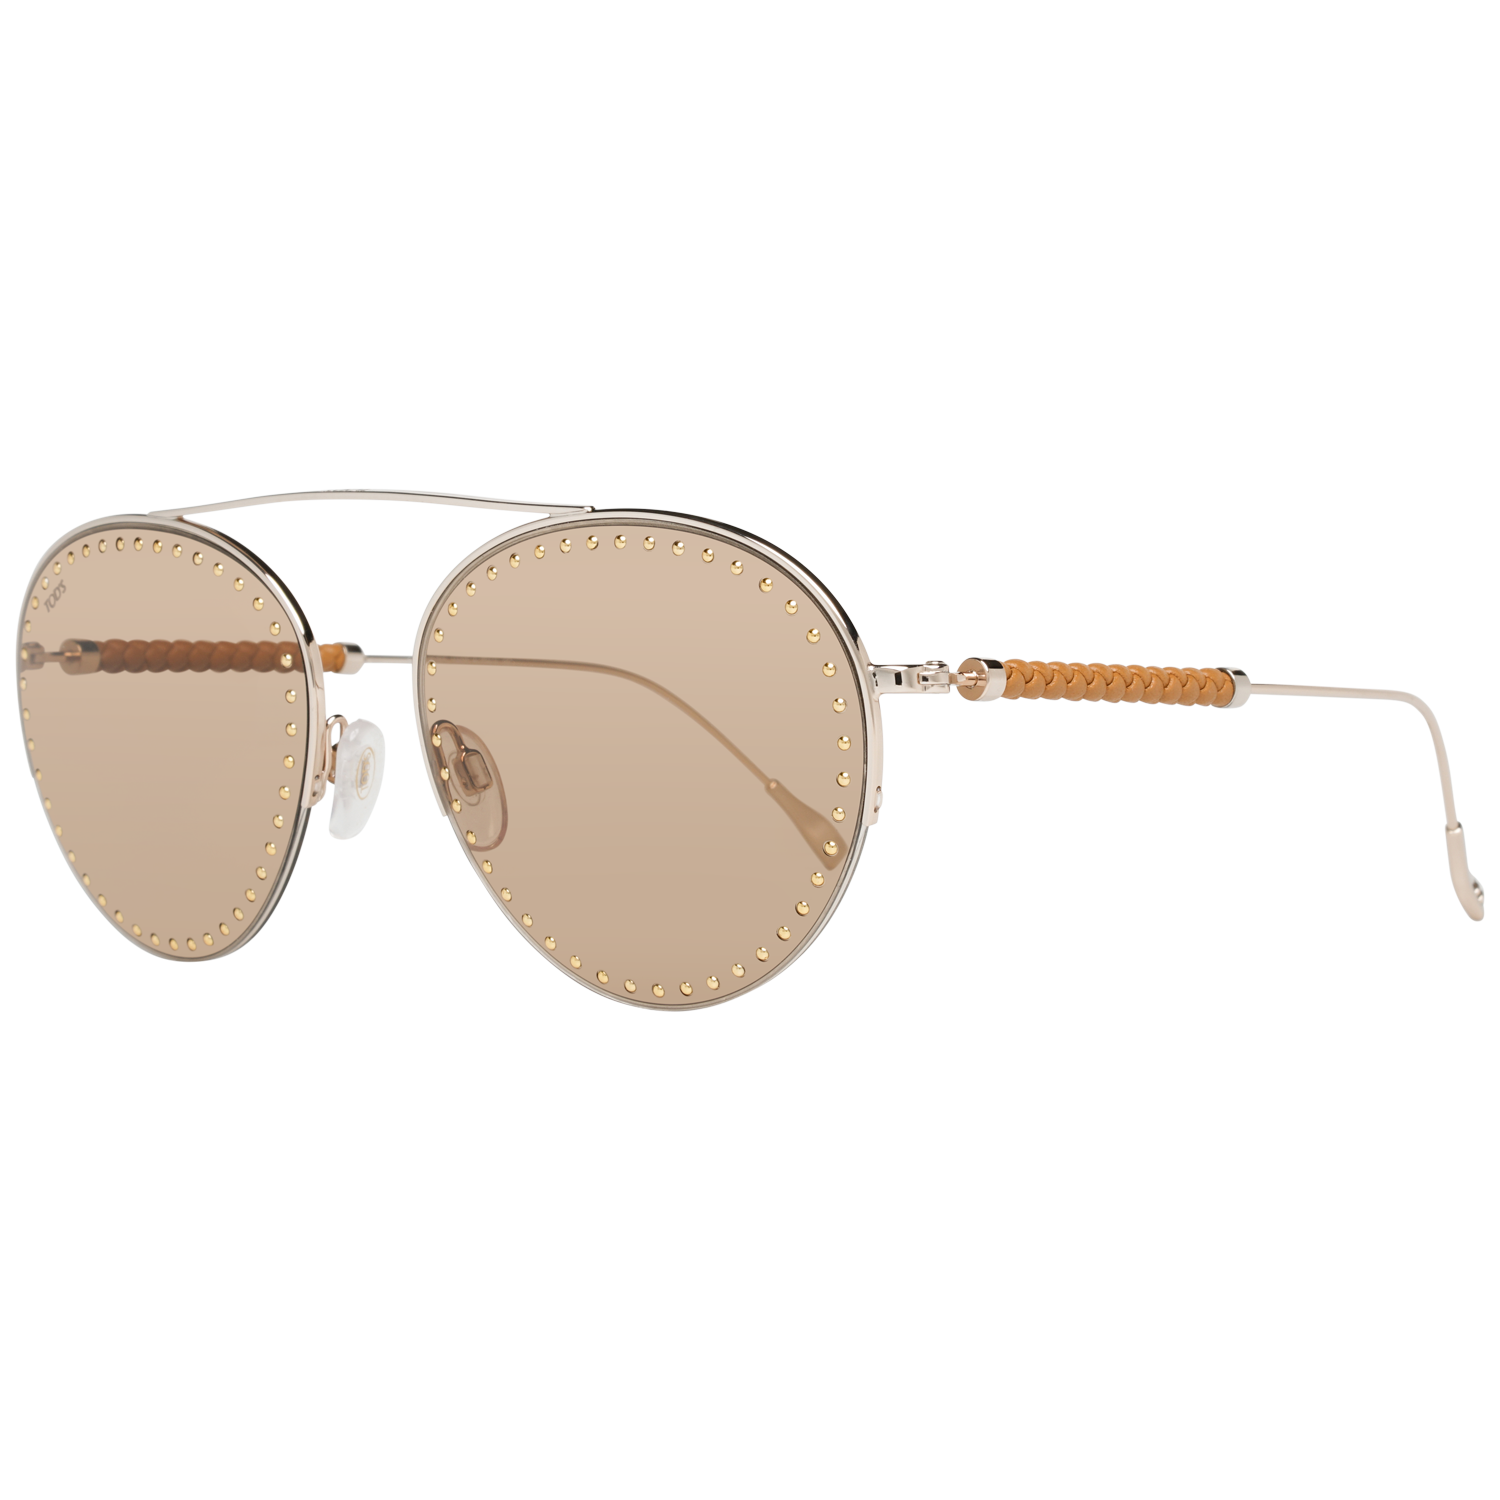 Tods Sunglasses TO0234 28E 60 Rose Gold